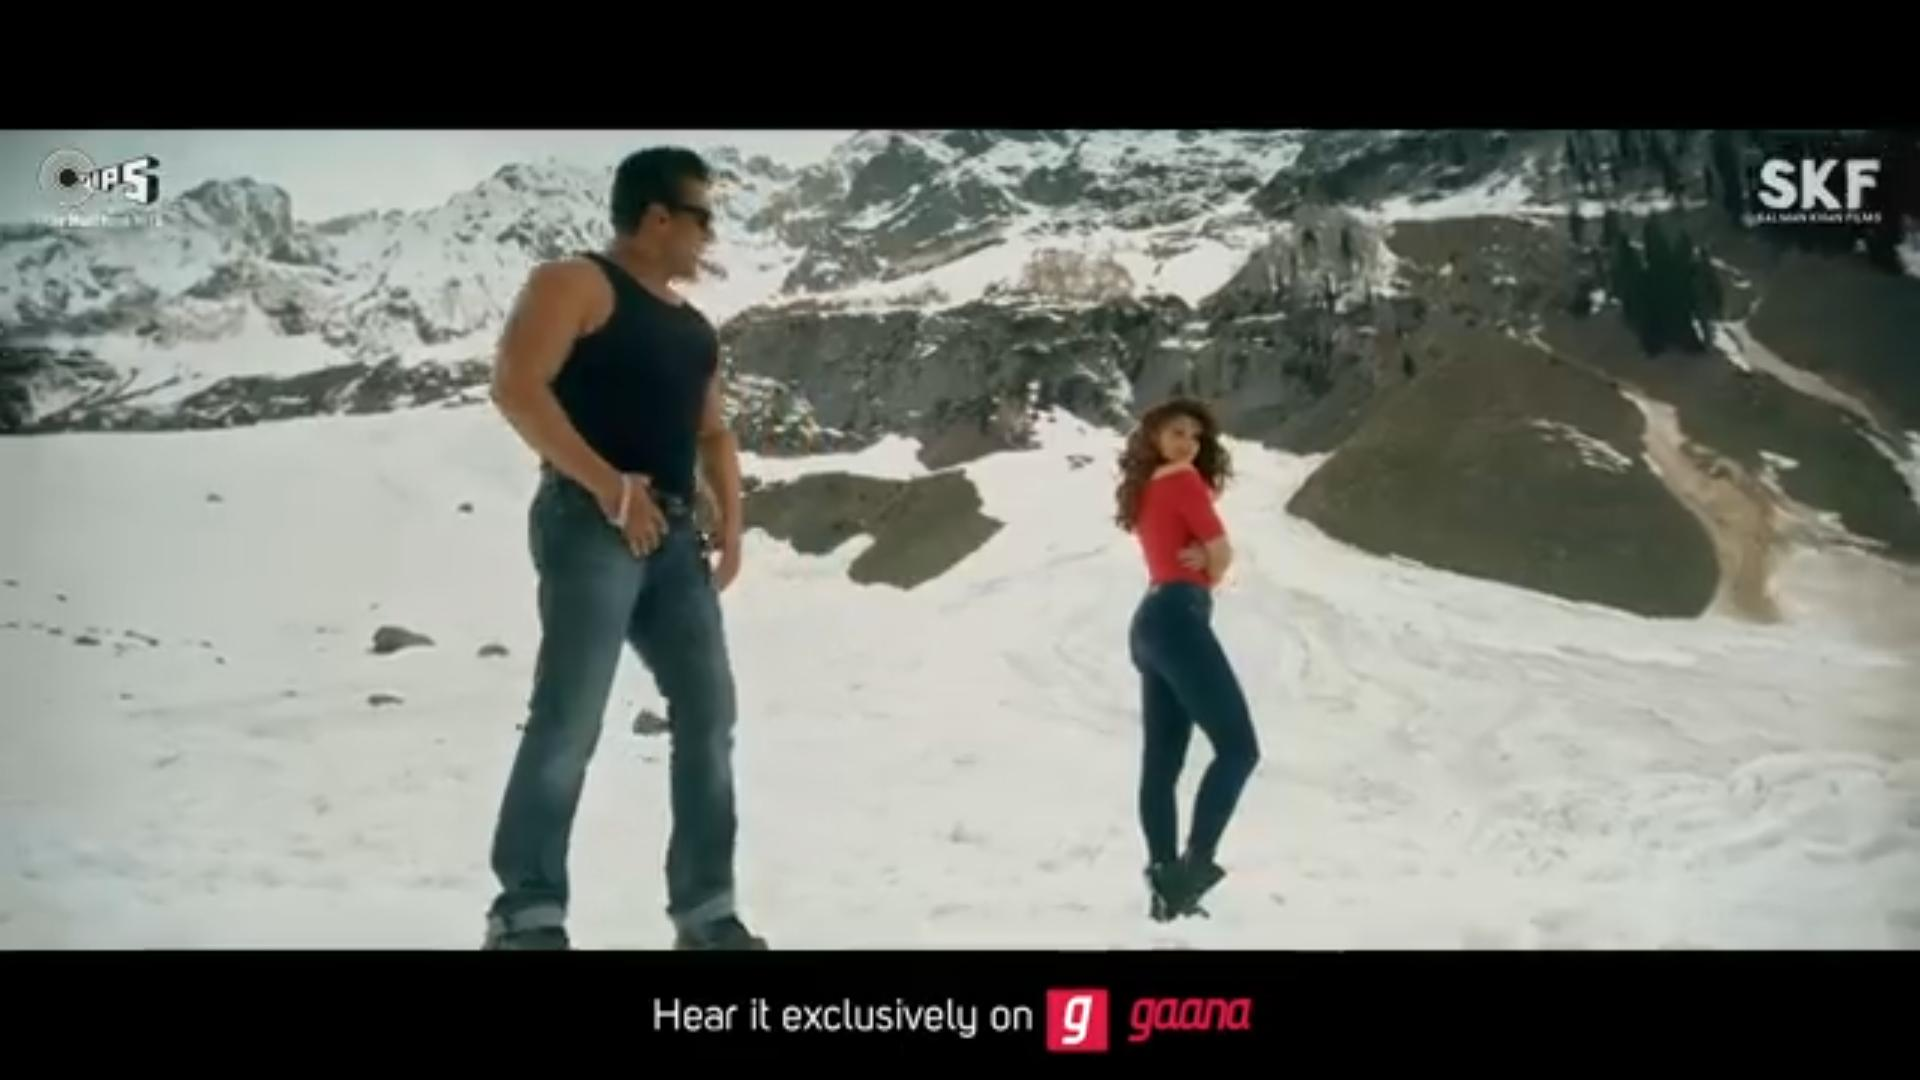 Superhit Hindi Video Songs For Android Apk Download Created by líadan on 06 may 2018. superhit hindi video songs for android